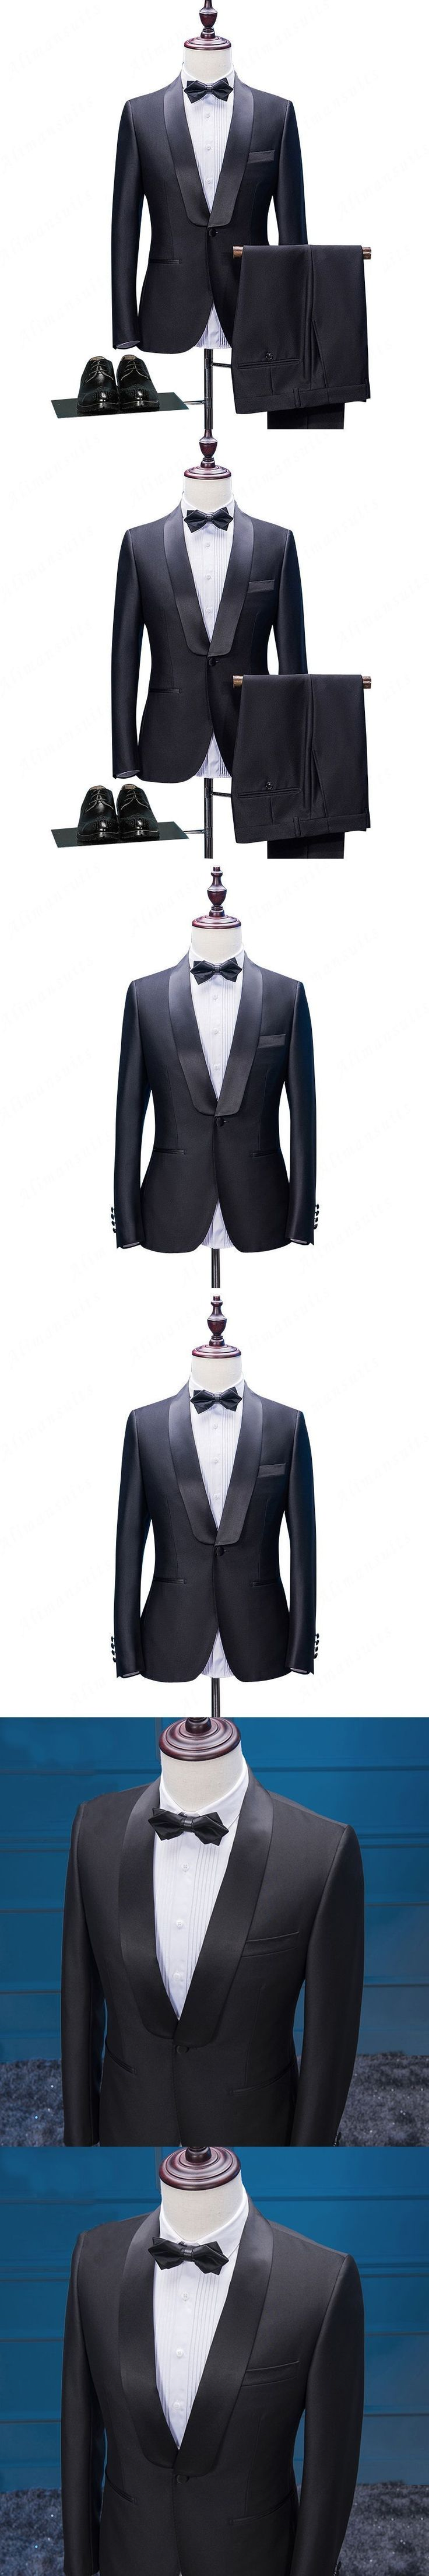 HB024 Modern Black Men Suits For Wedding Shawl Lapel Grooms Tuxedos Two Pieces Mens Suits Slim Fit Groomsmen Coat and Pants #menweddingsuits